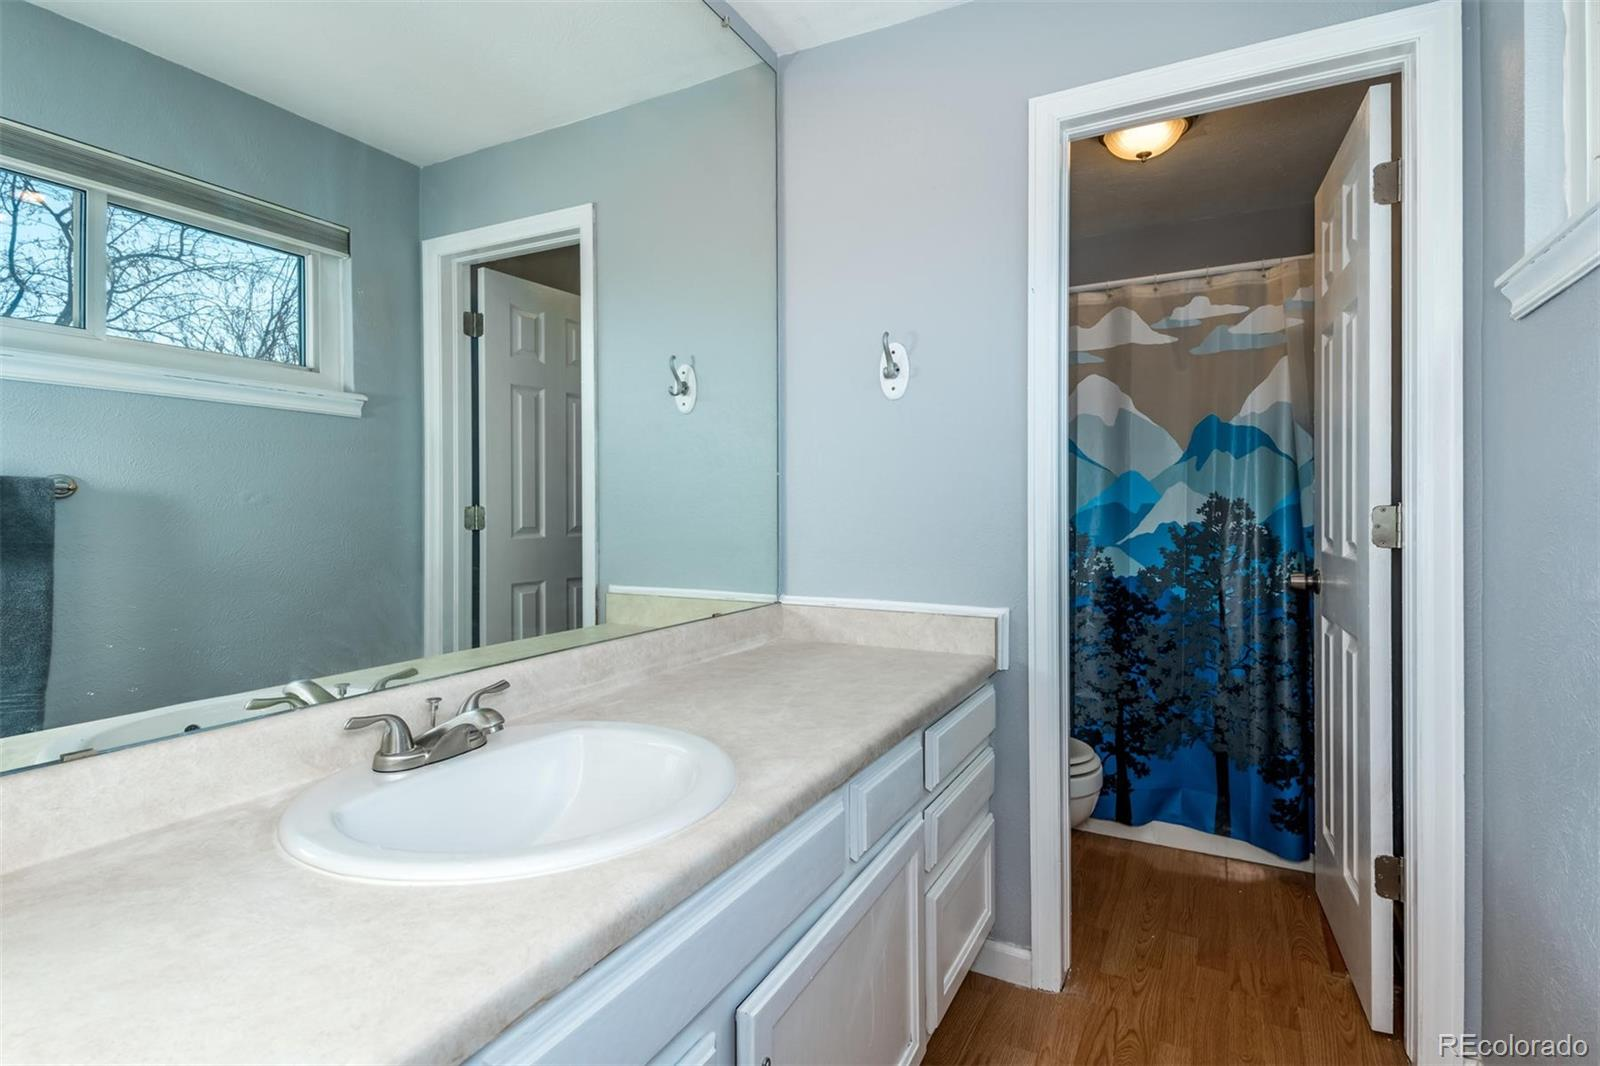 MLS# 5599126 - 15 - 5806 W 74th Place, Arvada, CO 80003